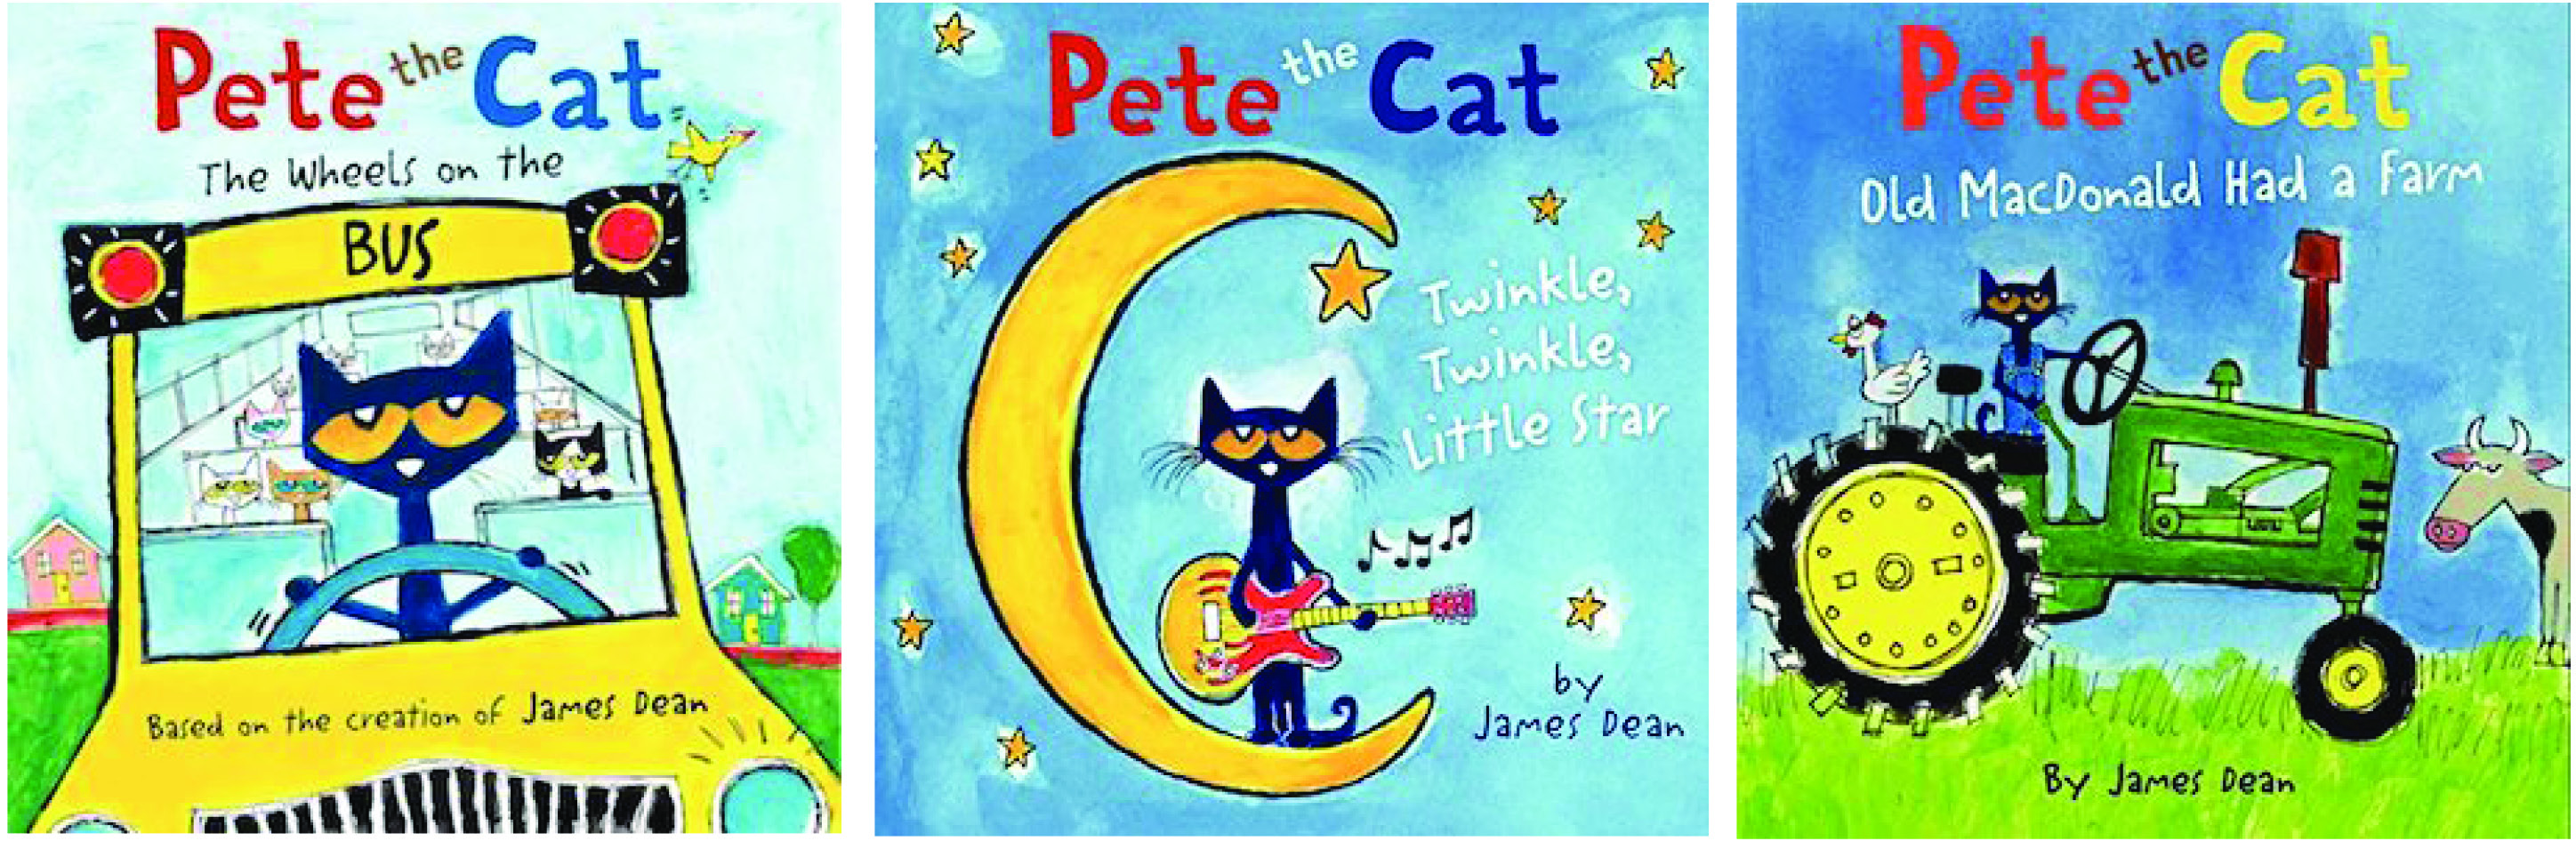 pete-the-cat-covers